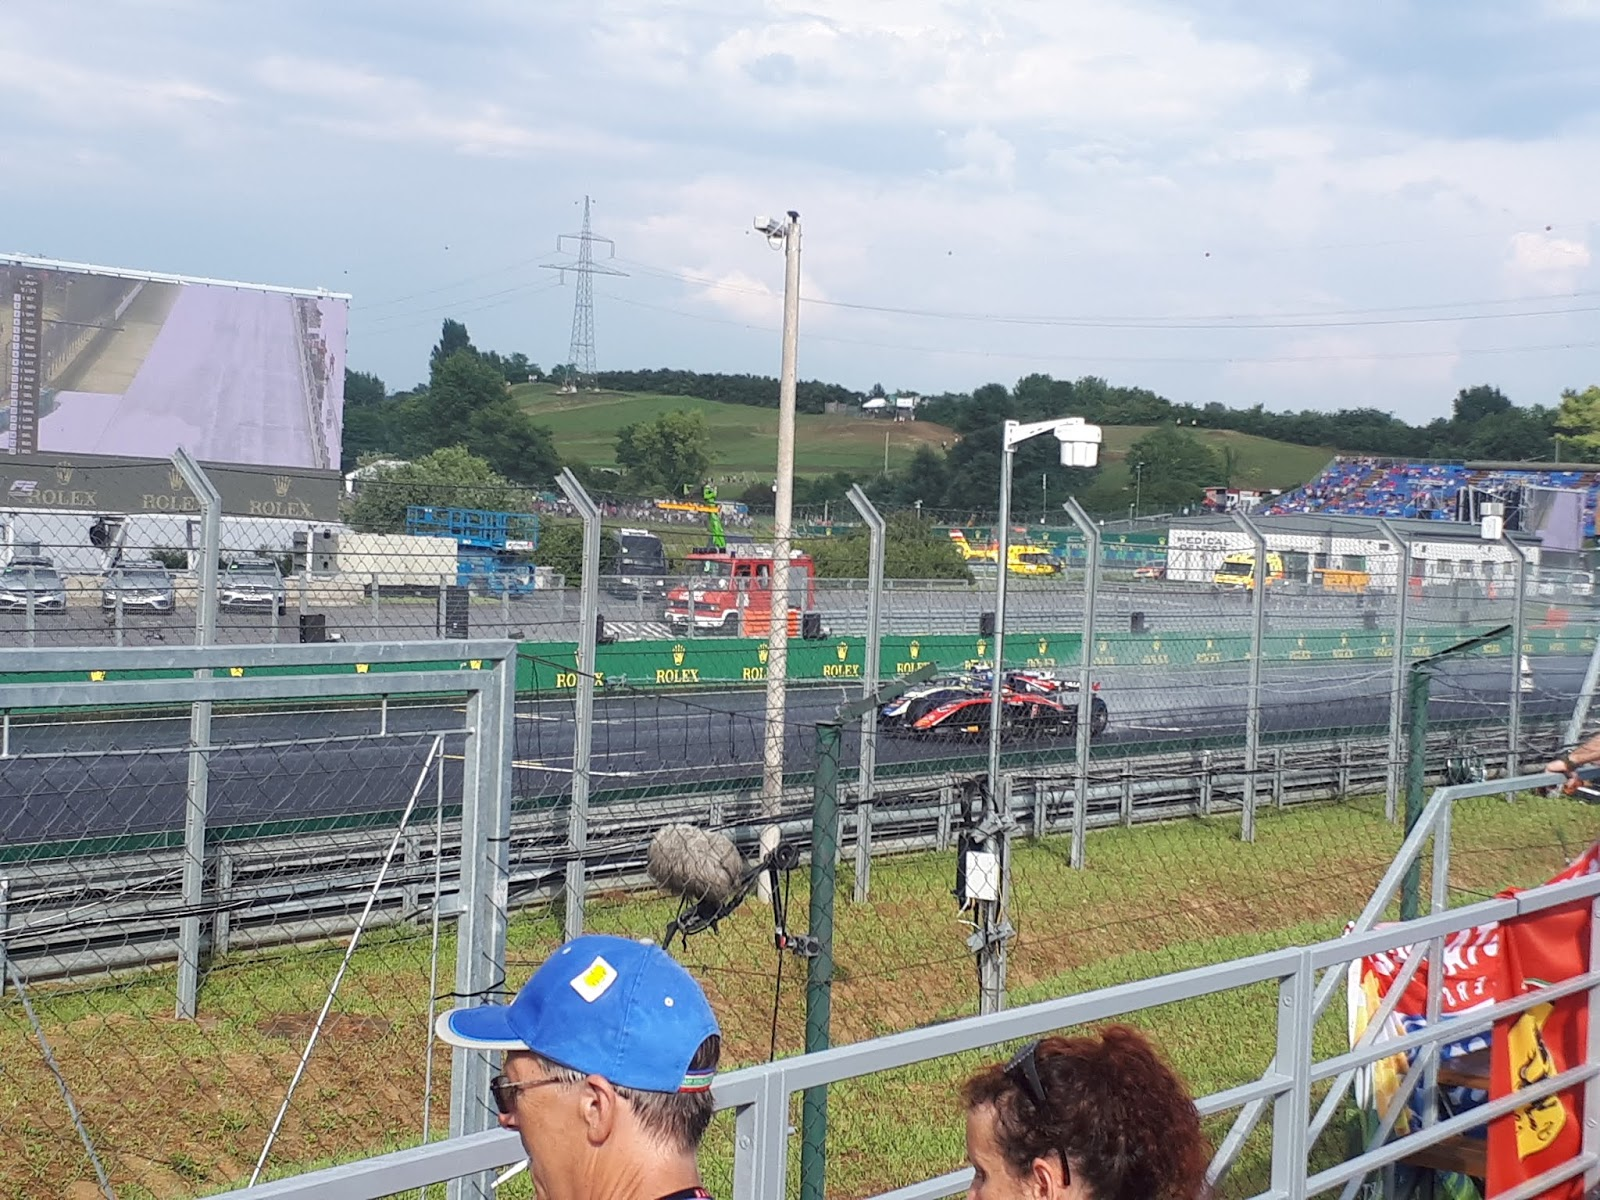 Rishis Retrospective Imola 1994 20 Years On Thoughts Sport Ap Boot Moto3 Moto 3 Safety Untuk Biker Touring No 38 45 Heavy Rain Hit The Racetrack Saturday Afternoon Impacting F1 Qualifying And F2 Main Race Pictured Here